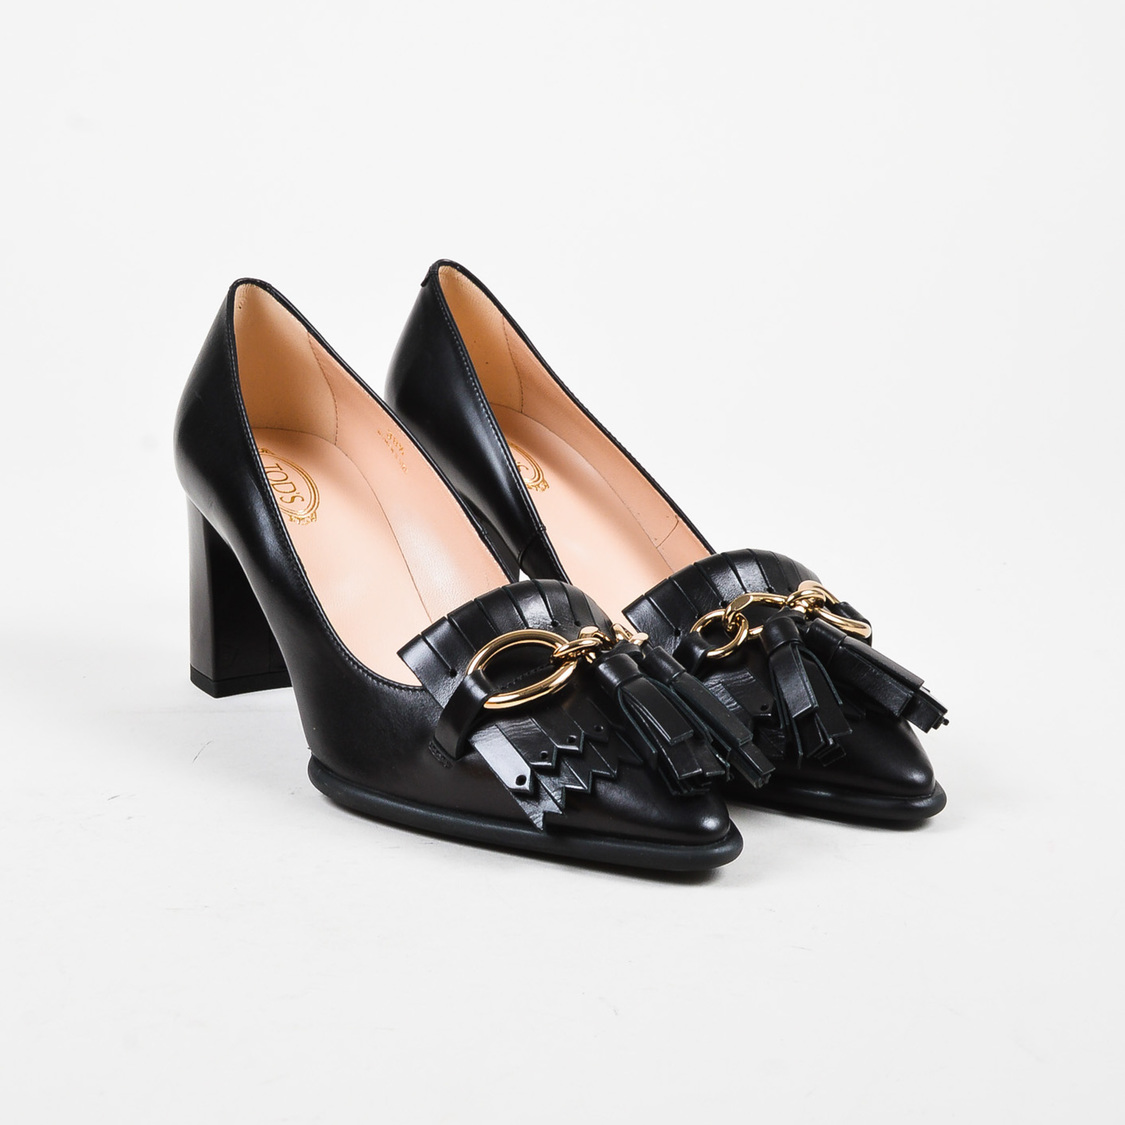 Pumps & High Heels for Women On Sale, Black, Leather, 2017, 3.5 4 4.5 Tod's